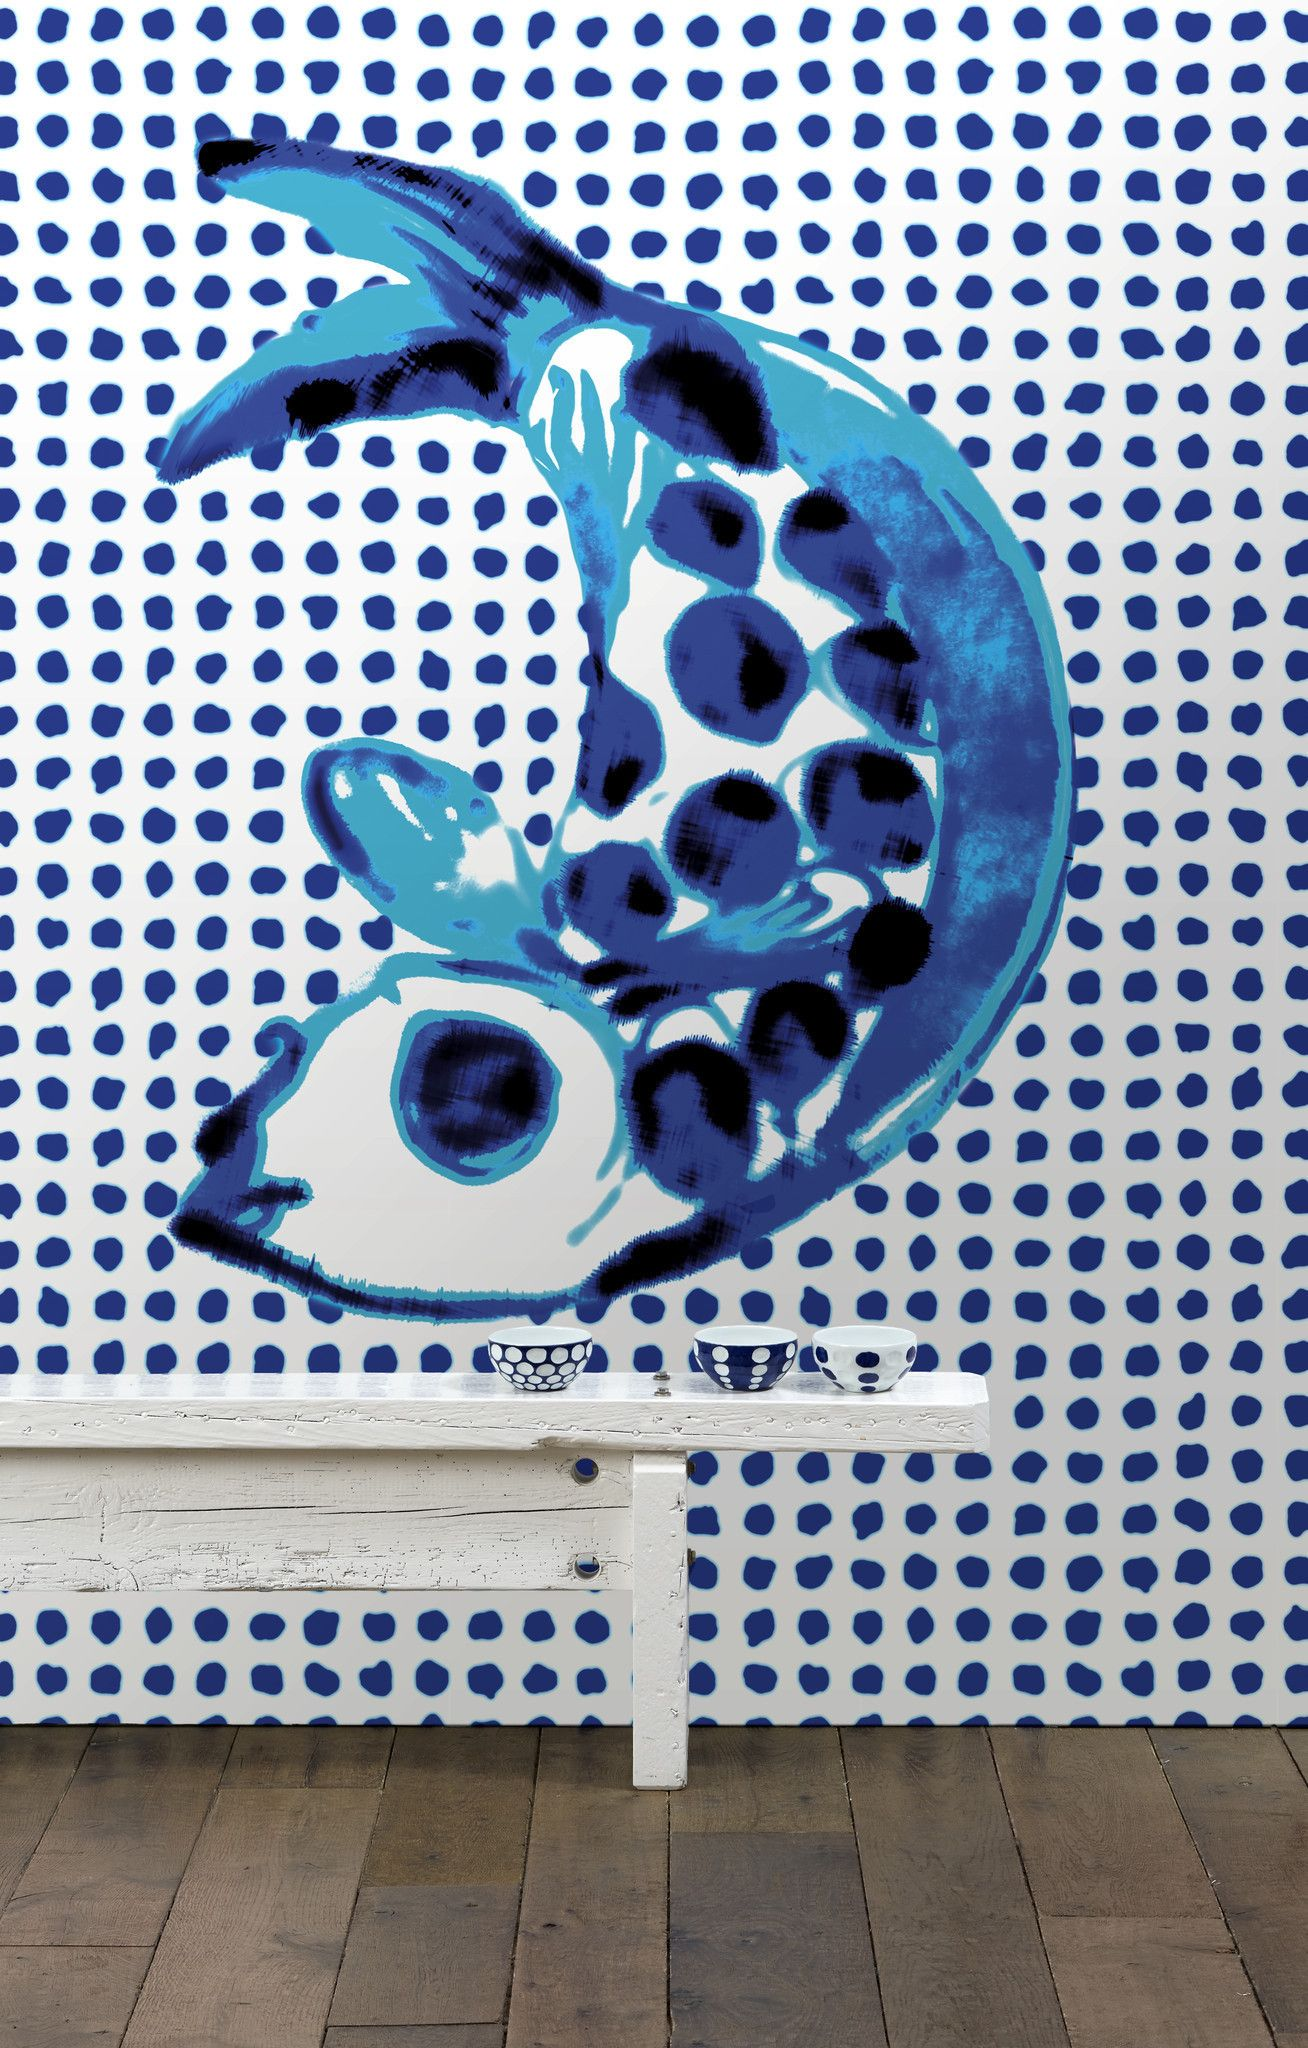 No. 1 Addiction Wall Mural design by Paola Navone for NLXL